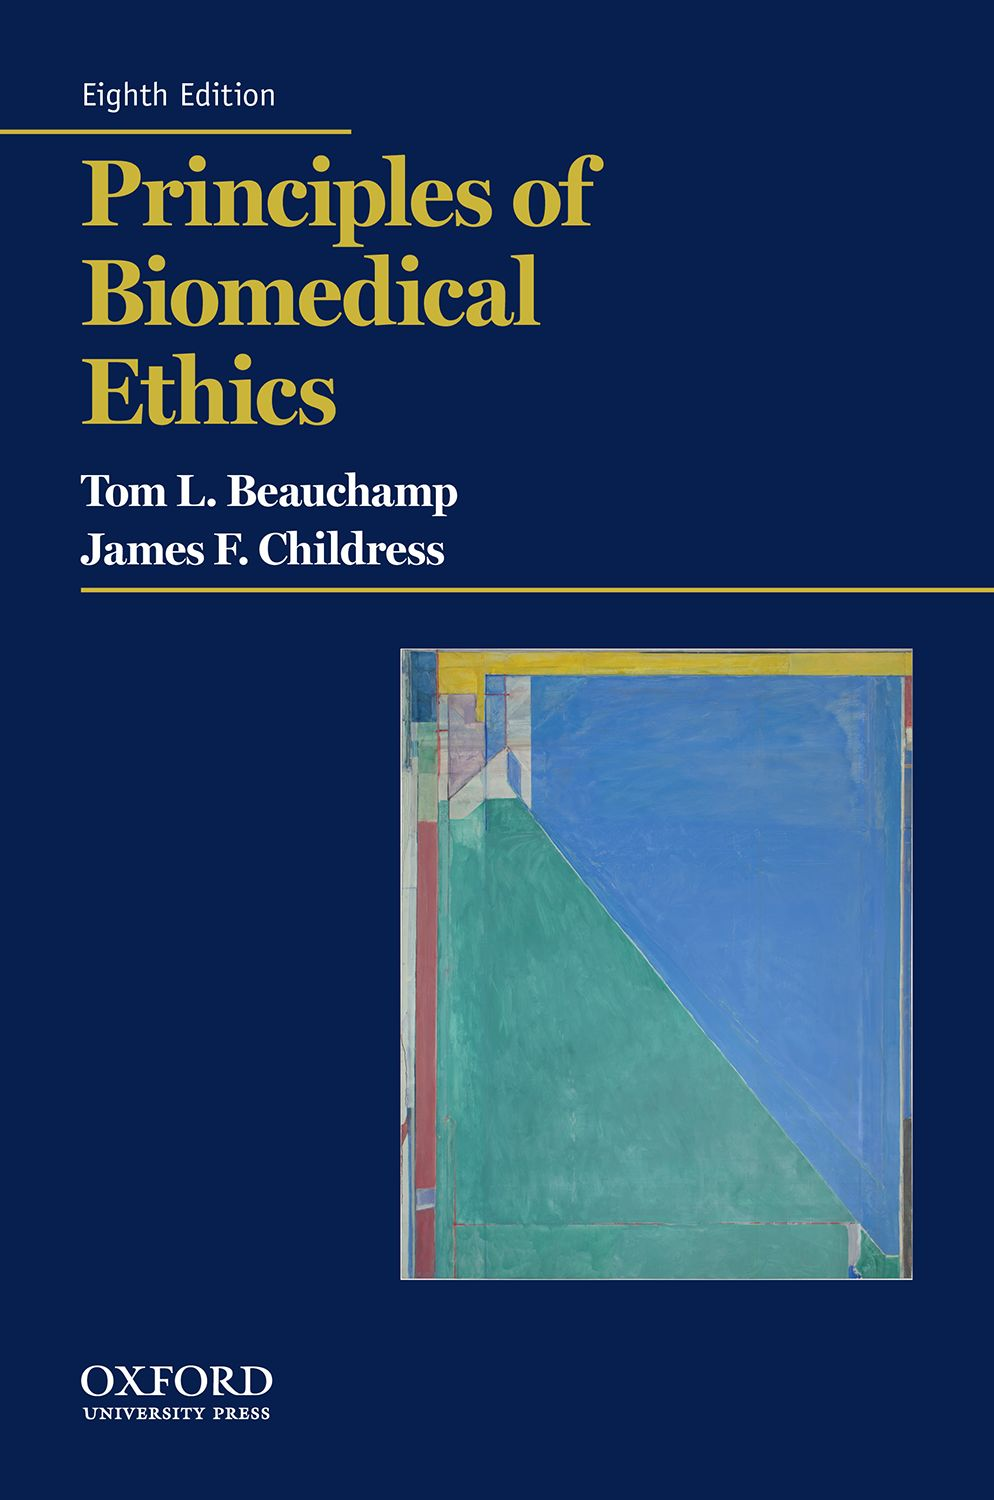 Principles of Biomedical Ethics 8e Instructor Resources